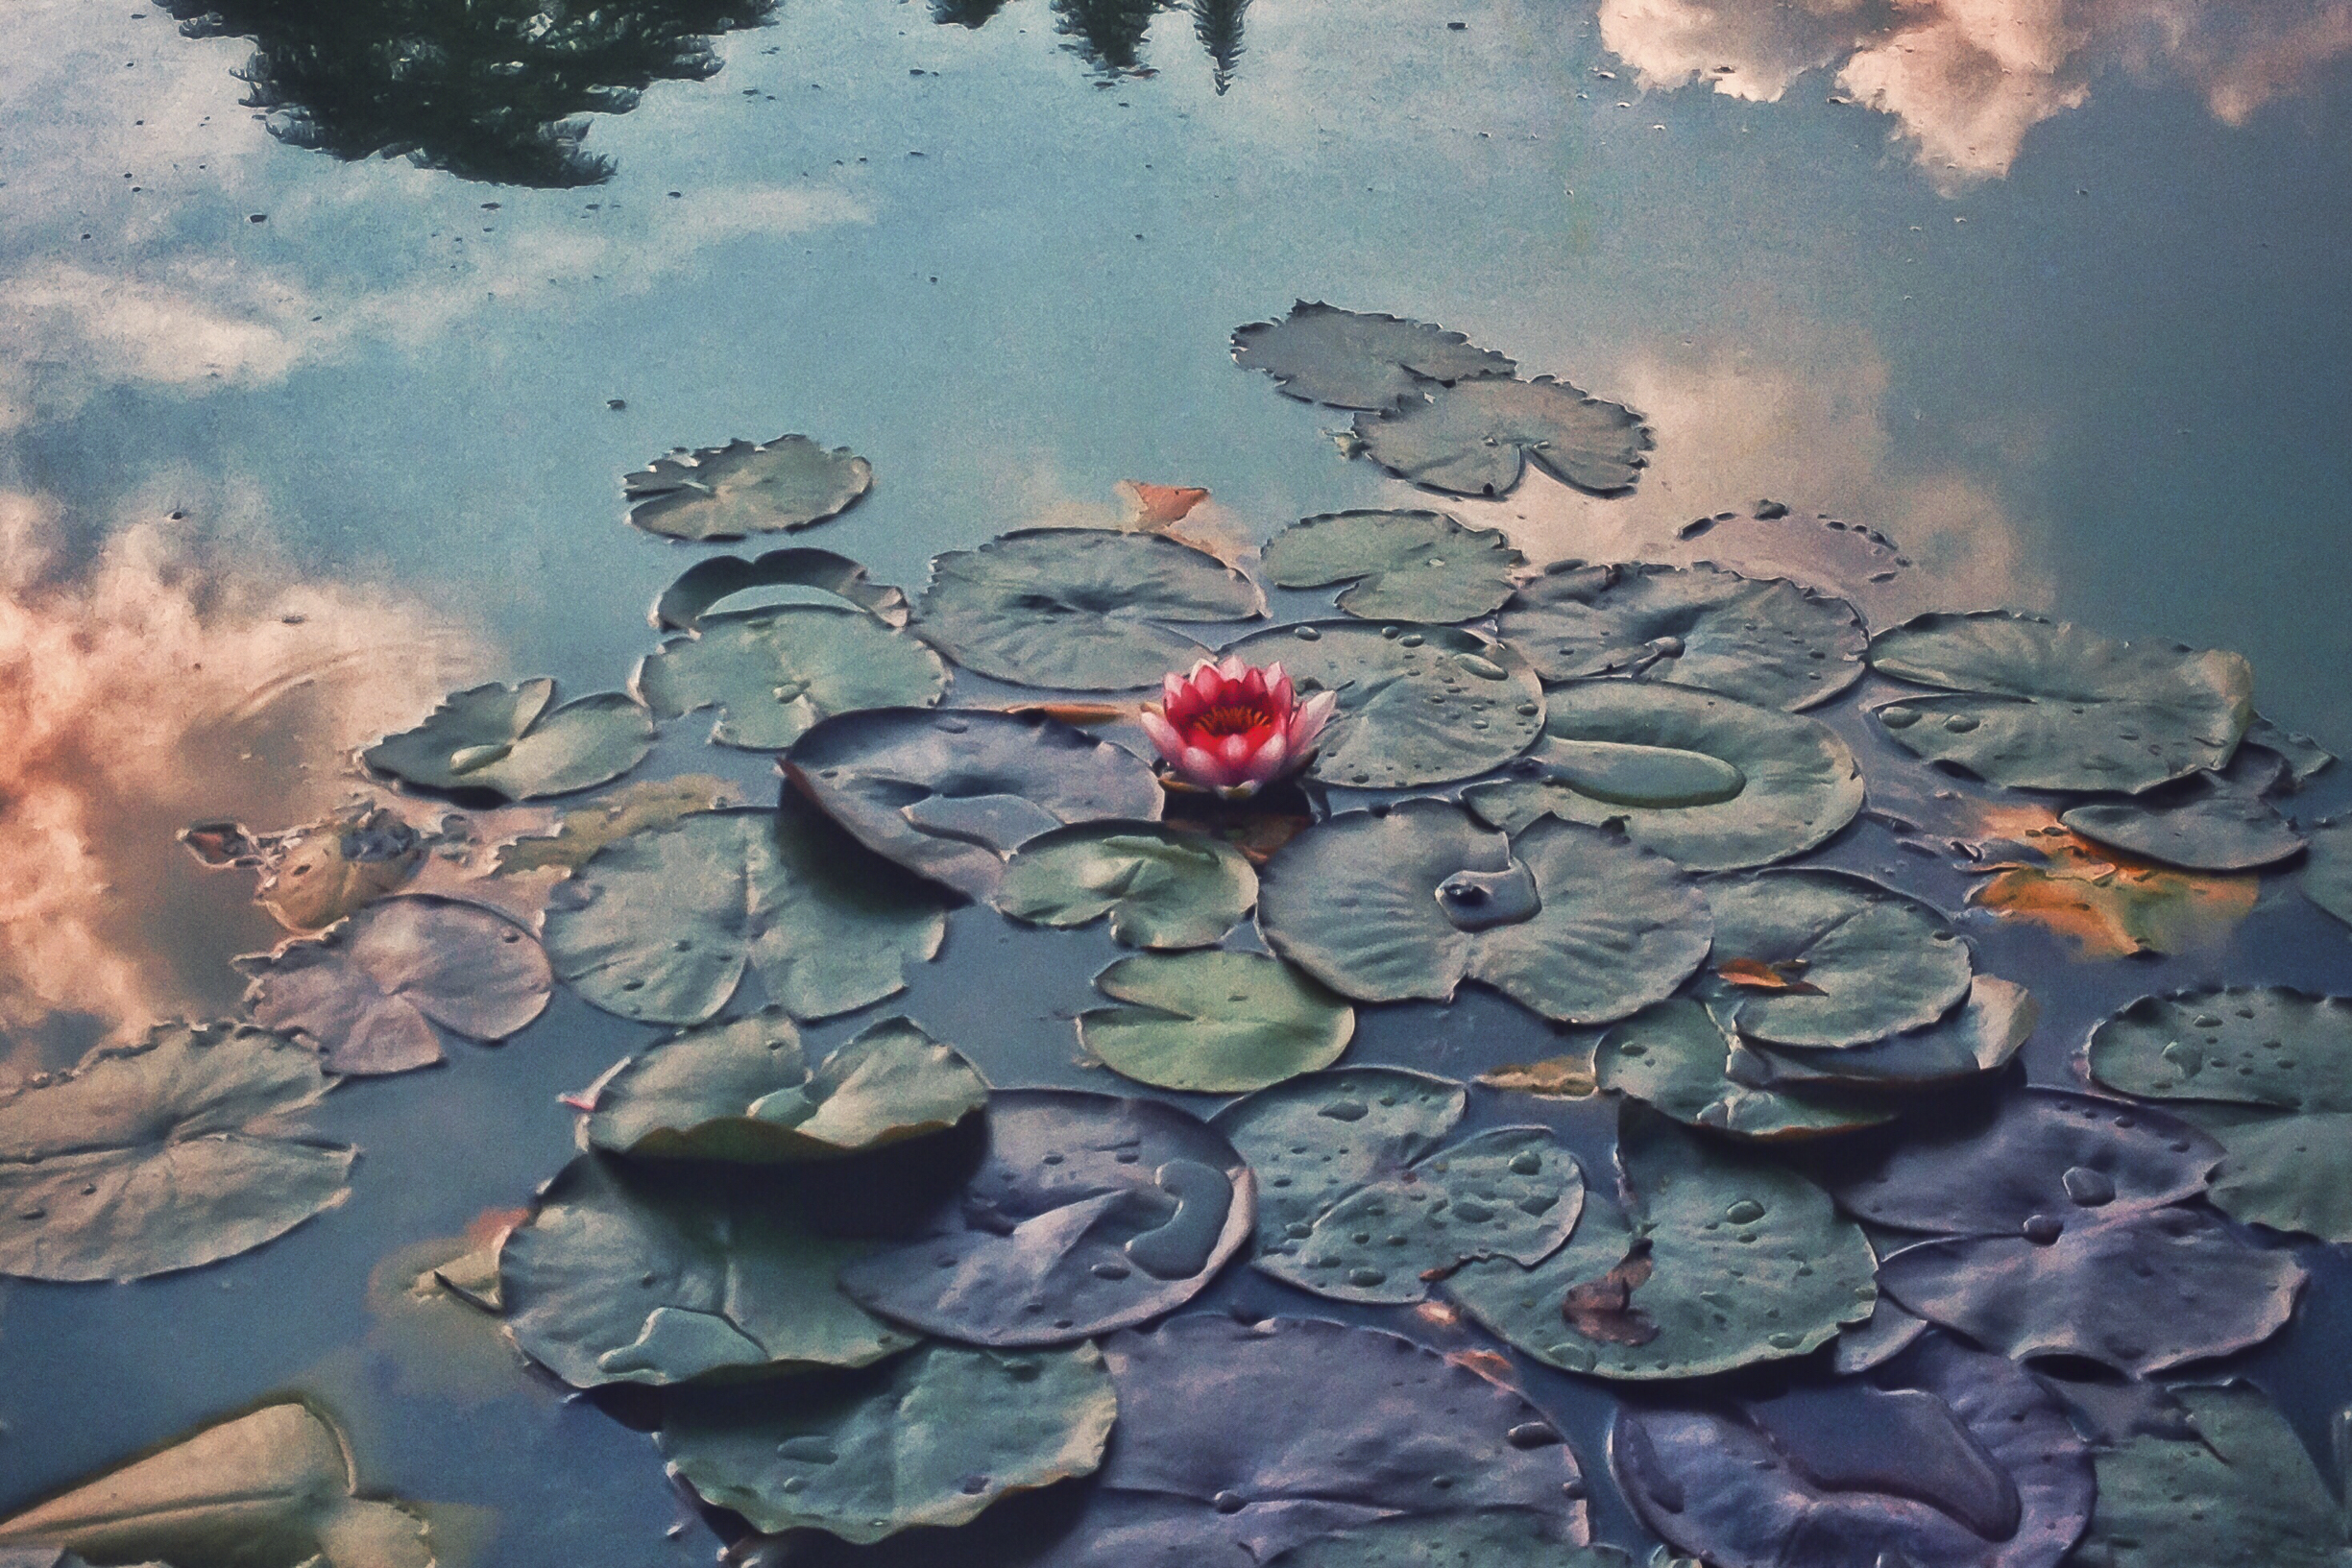 Water lilies in the clouds